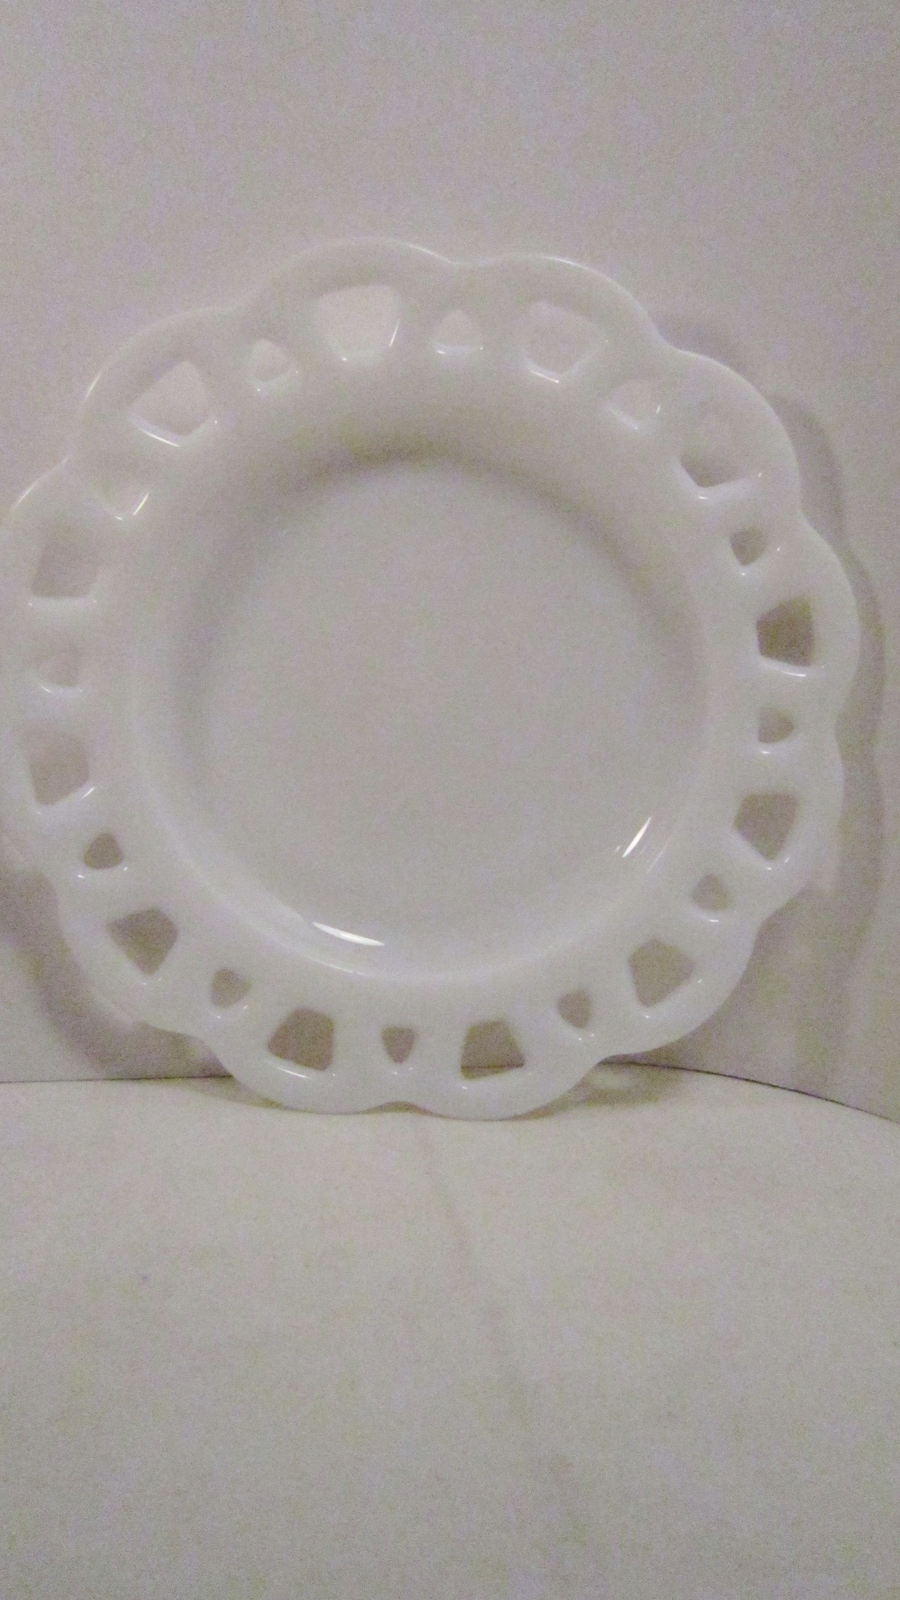 Primary image for Hazel Atlas 1940s Platonite Lace Edge Plate, White Glass Serving Dish